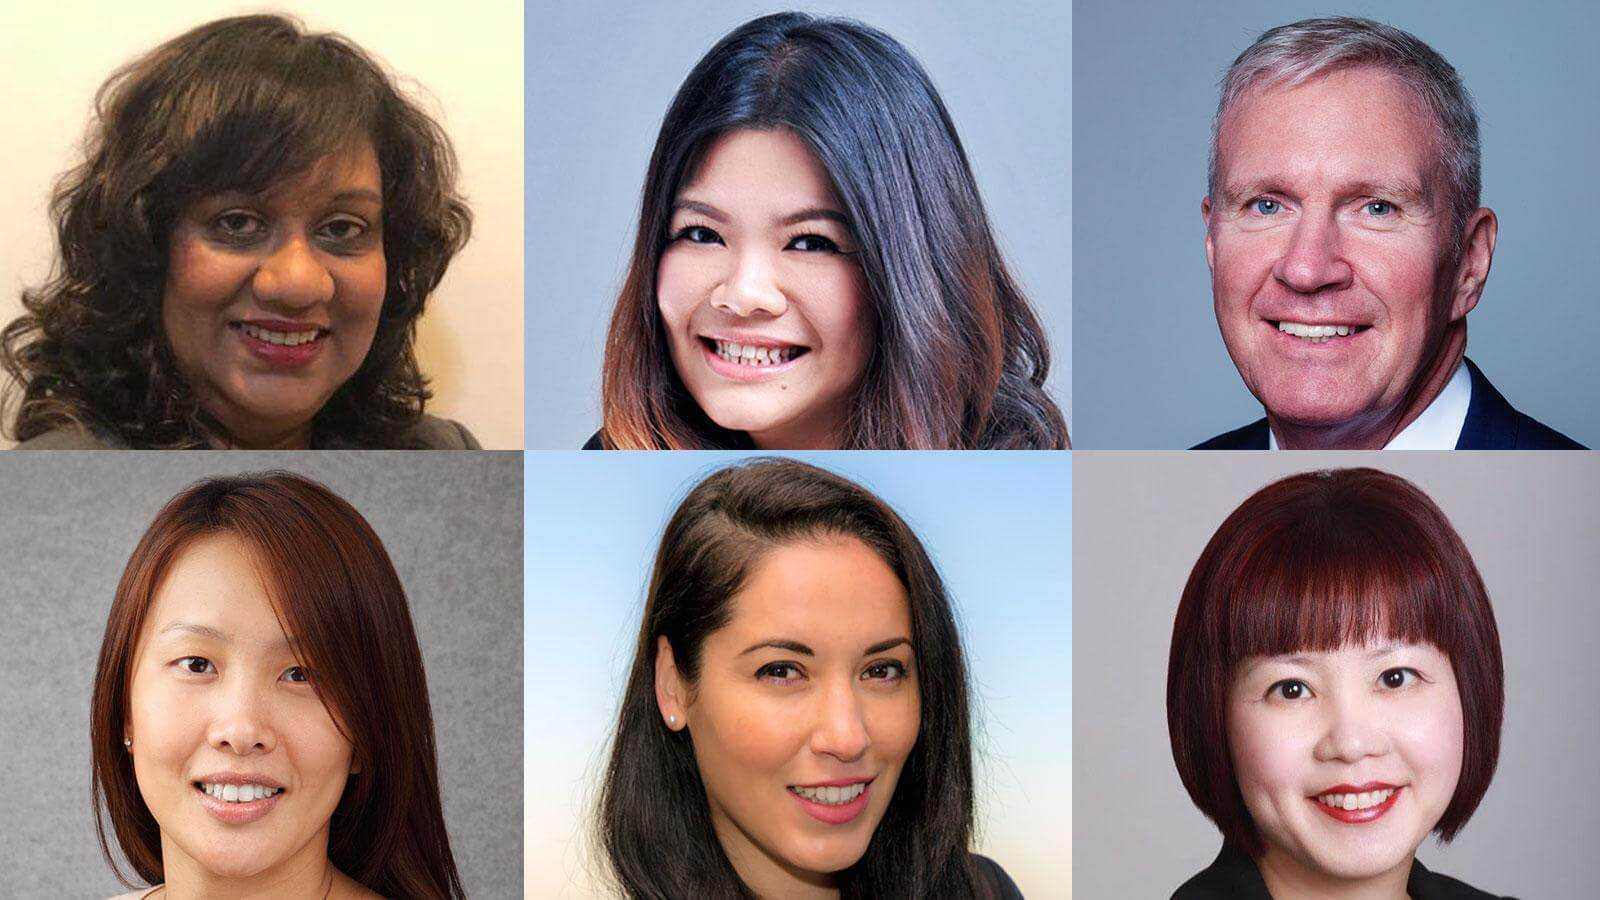 Human Resources Online: How leaders from DSM, Eaton, Micro Focus, and more are tackling underlying cognitive biases and societal expectations